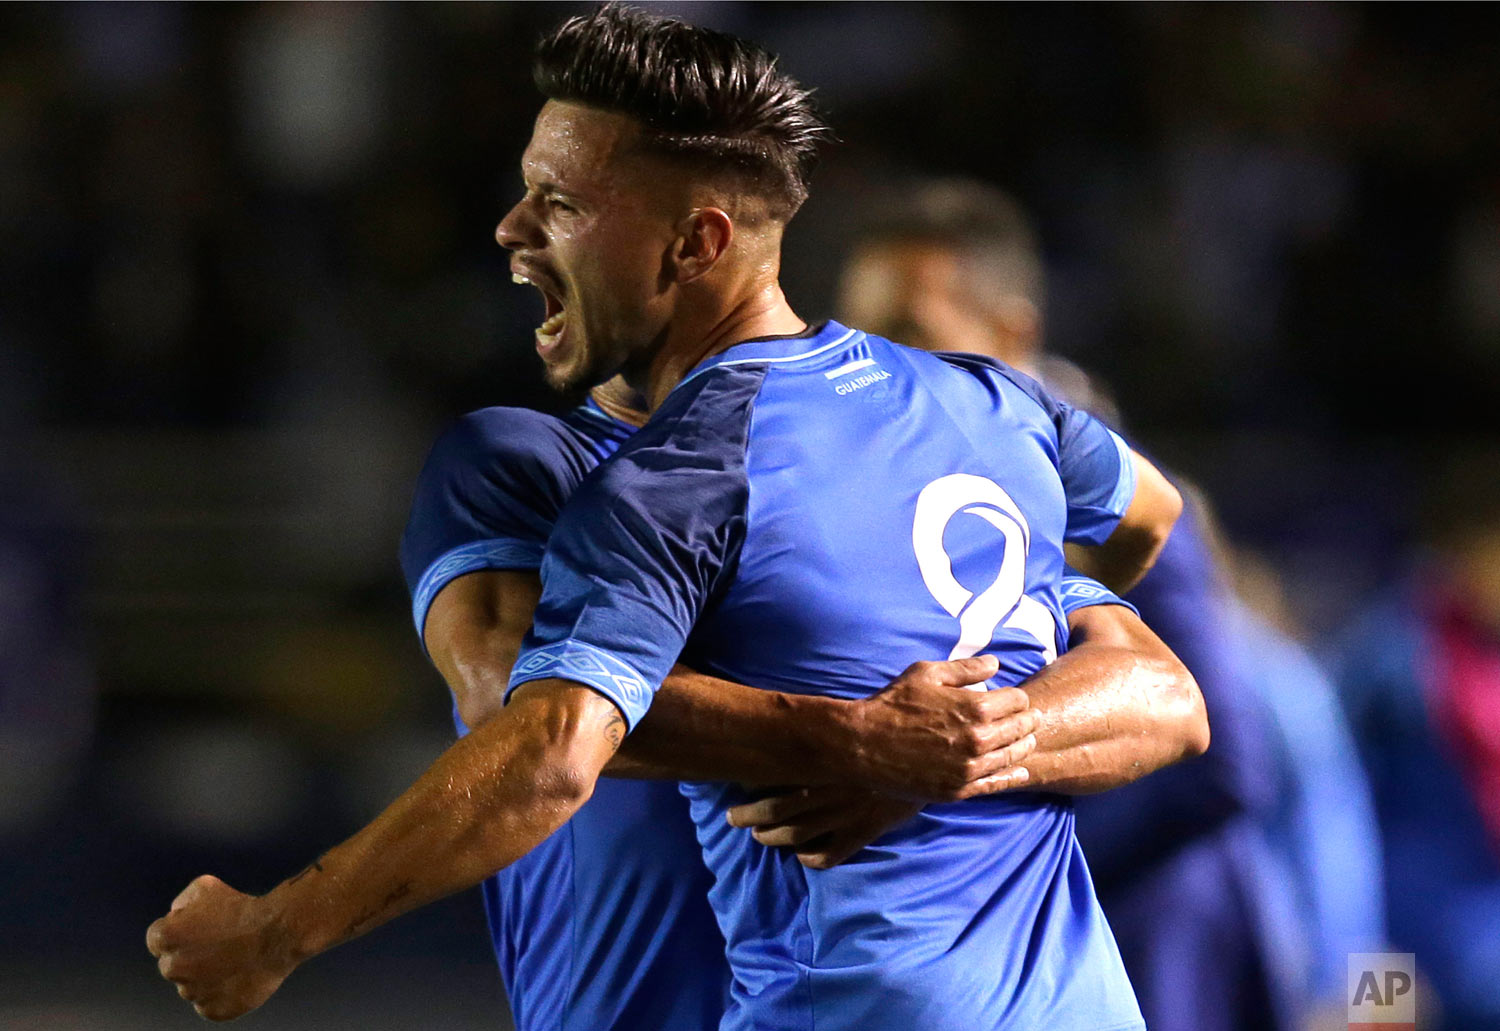 In this March 22, 2019 photo, Guatemala's Stefano Cincotta celebrates with a teammate after scoring against Costa Rica during a friendly soccer match at Mateo Flores stadium in Guatemala City. (AP Photo/Moises Castillo)